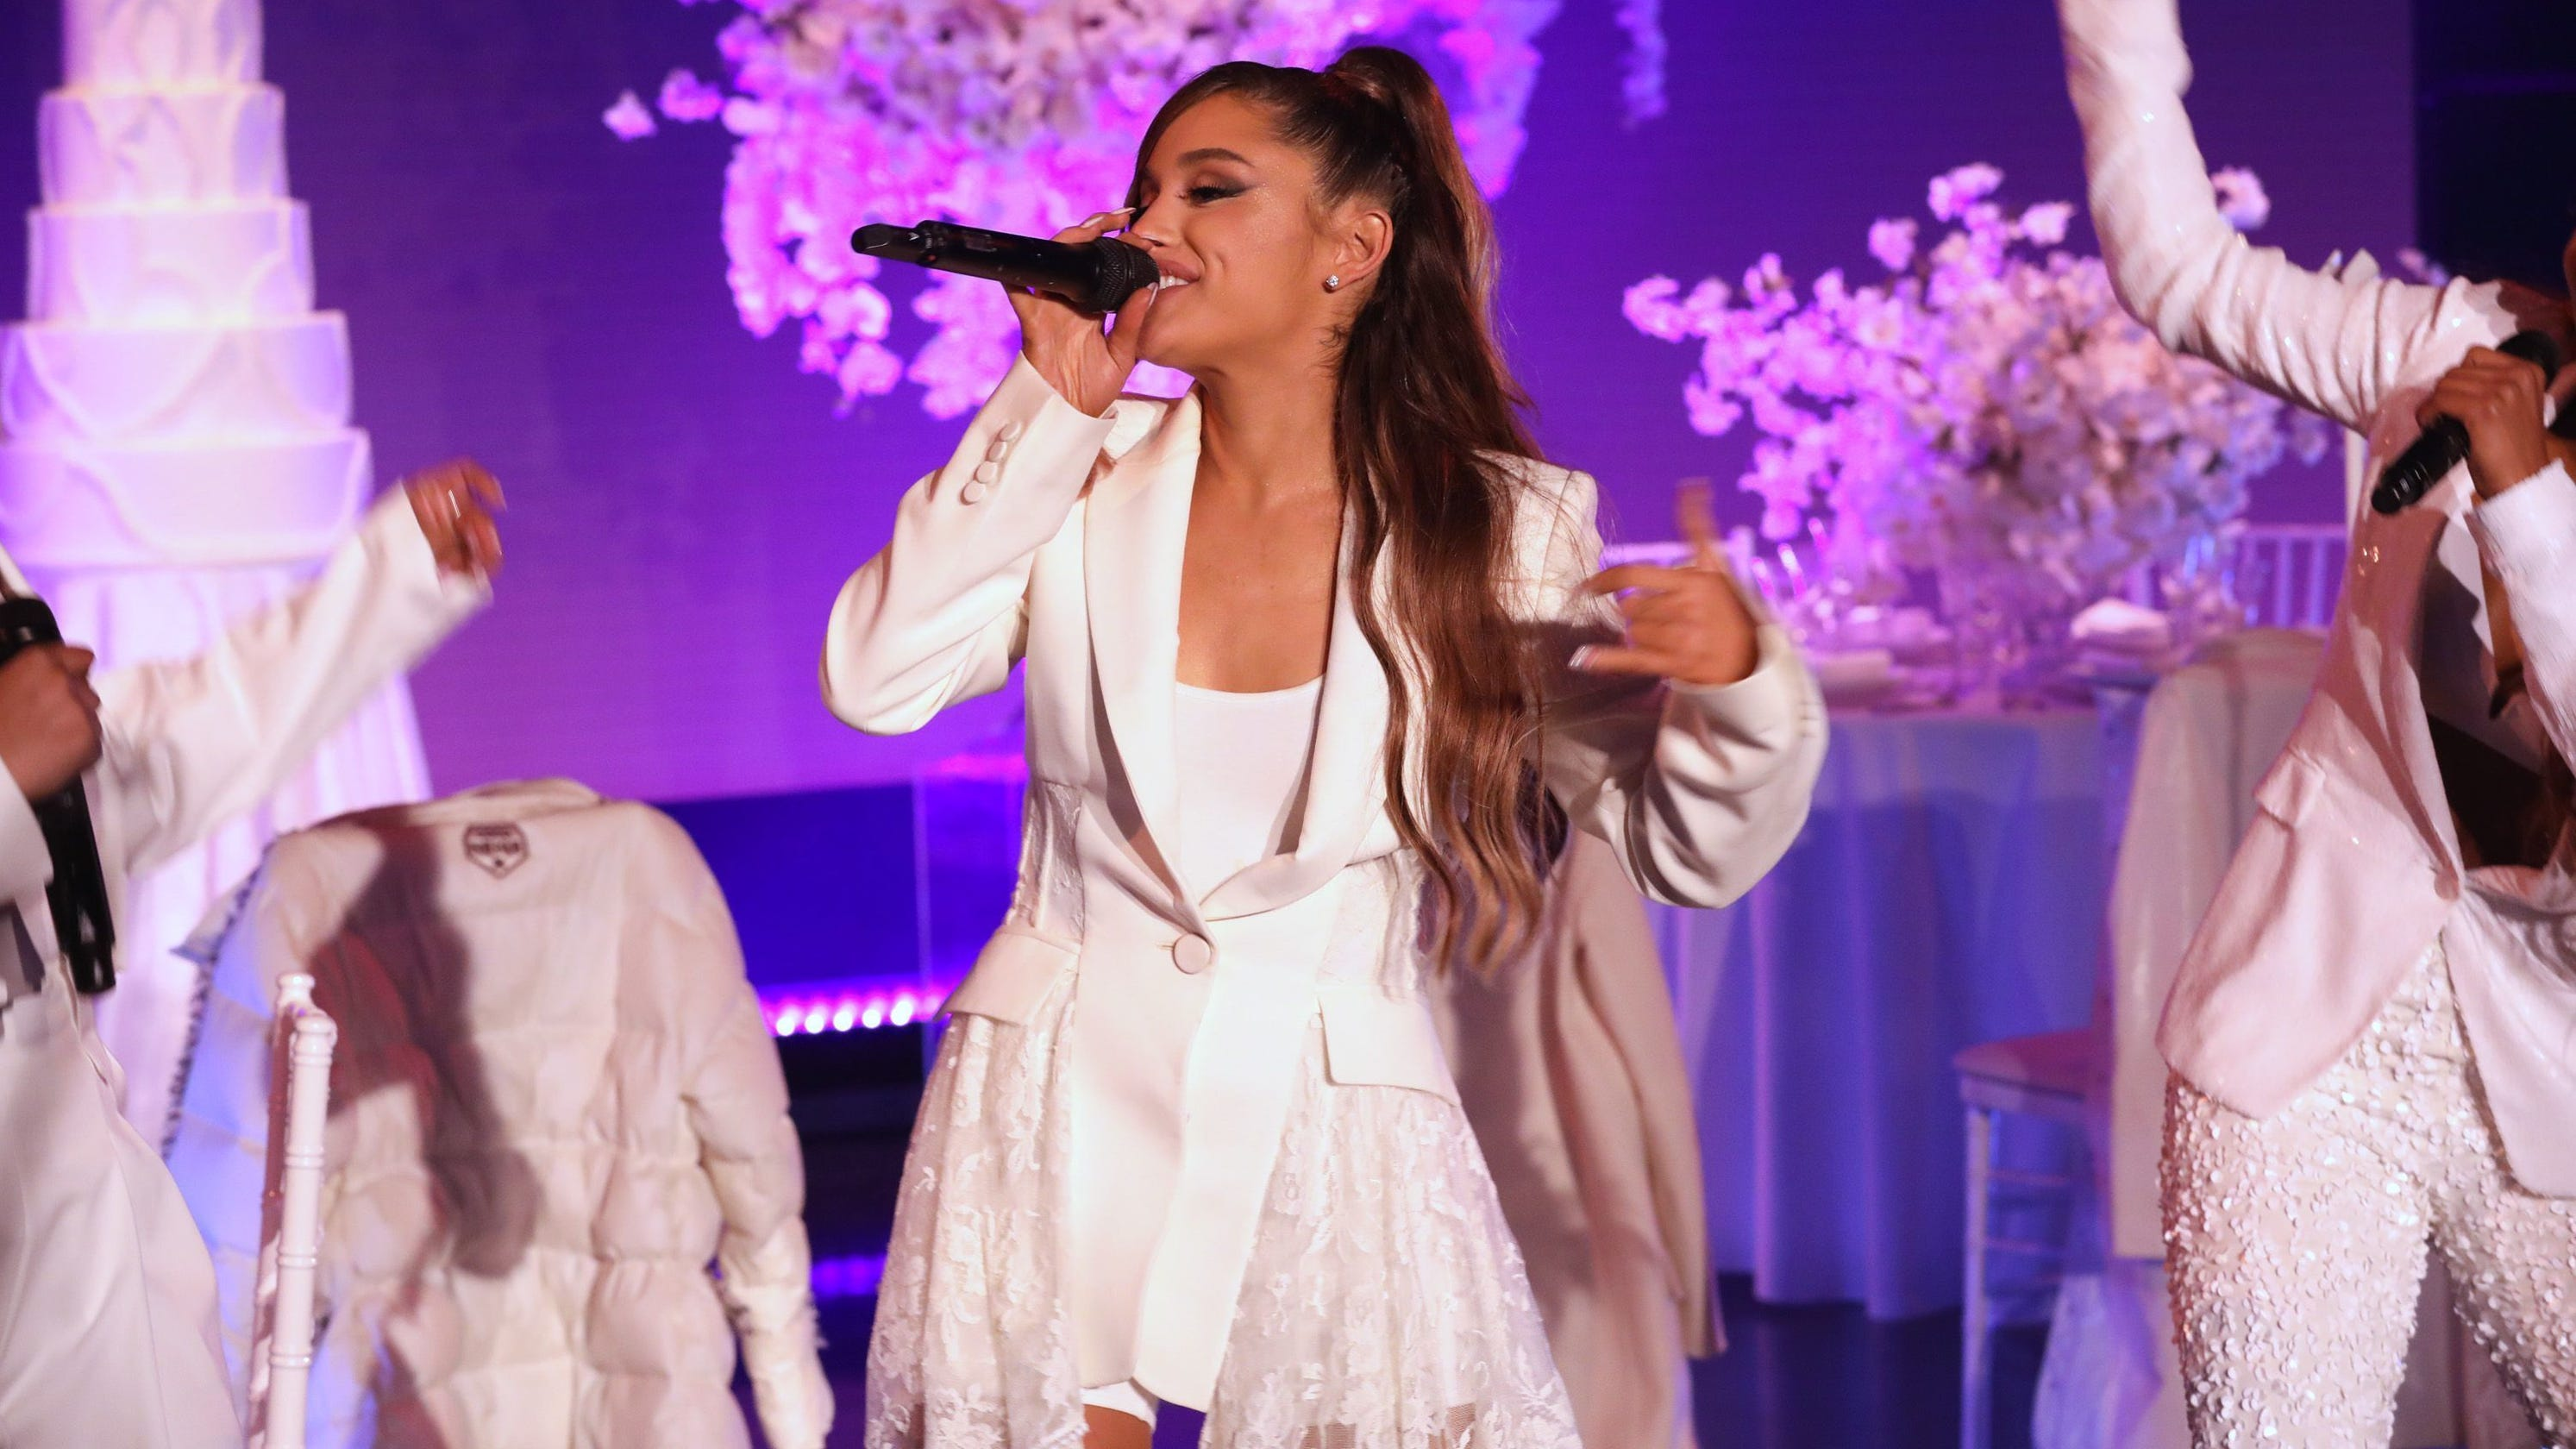 f2dfe83d0a Ariana Grande performs at the peak of her powers at packed Fiserv Forum  show in Milwaukee